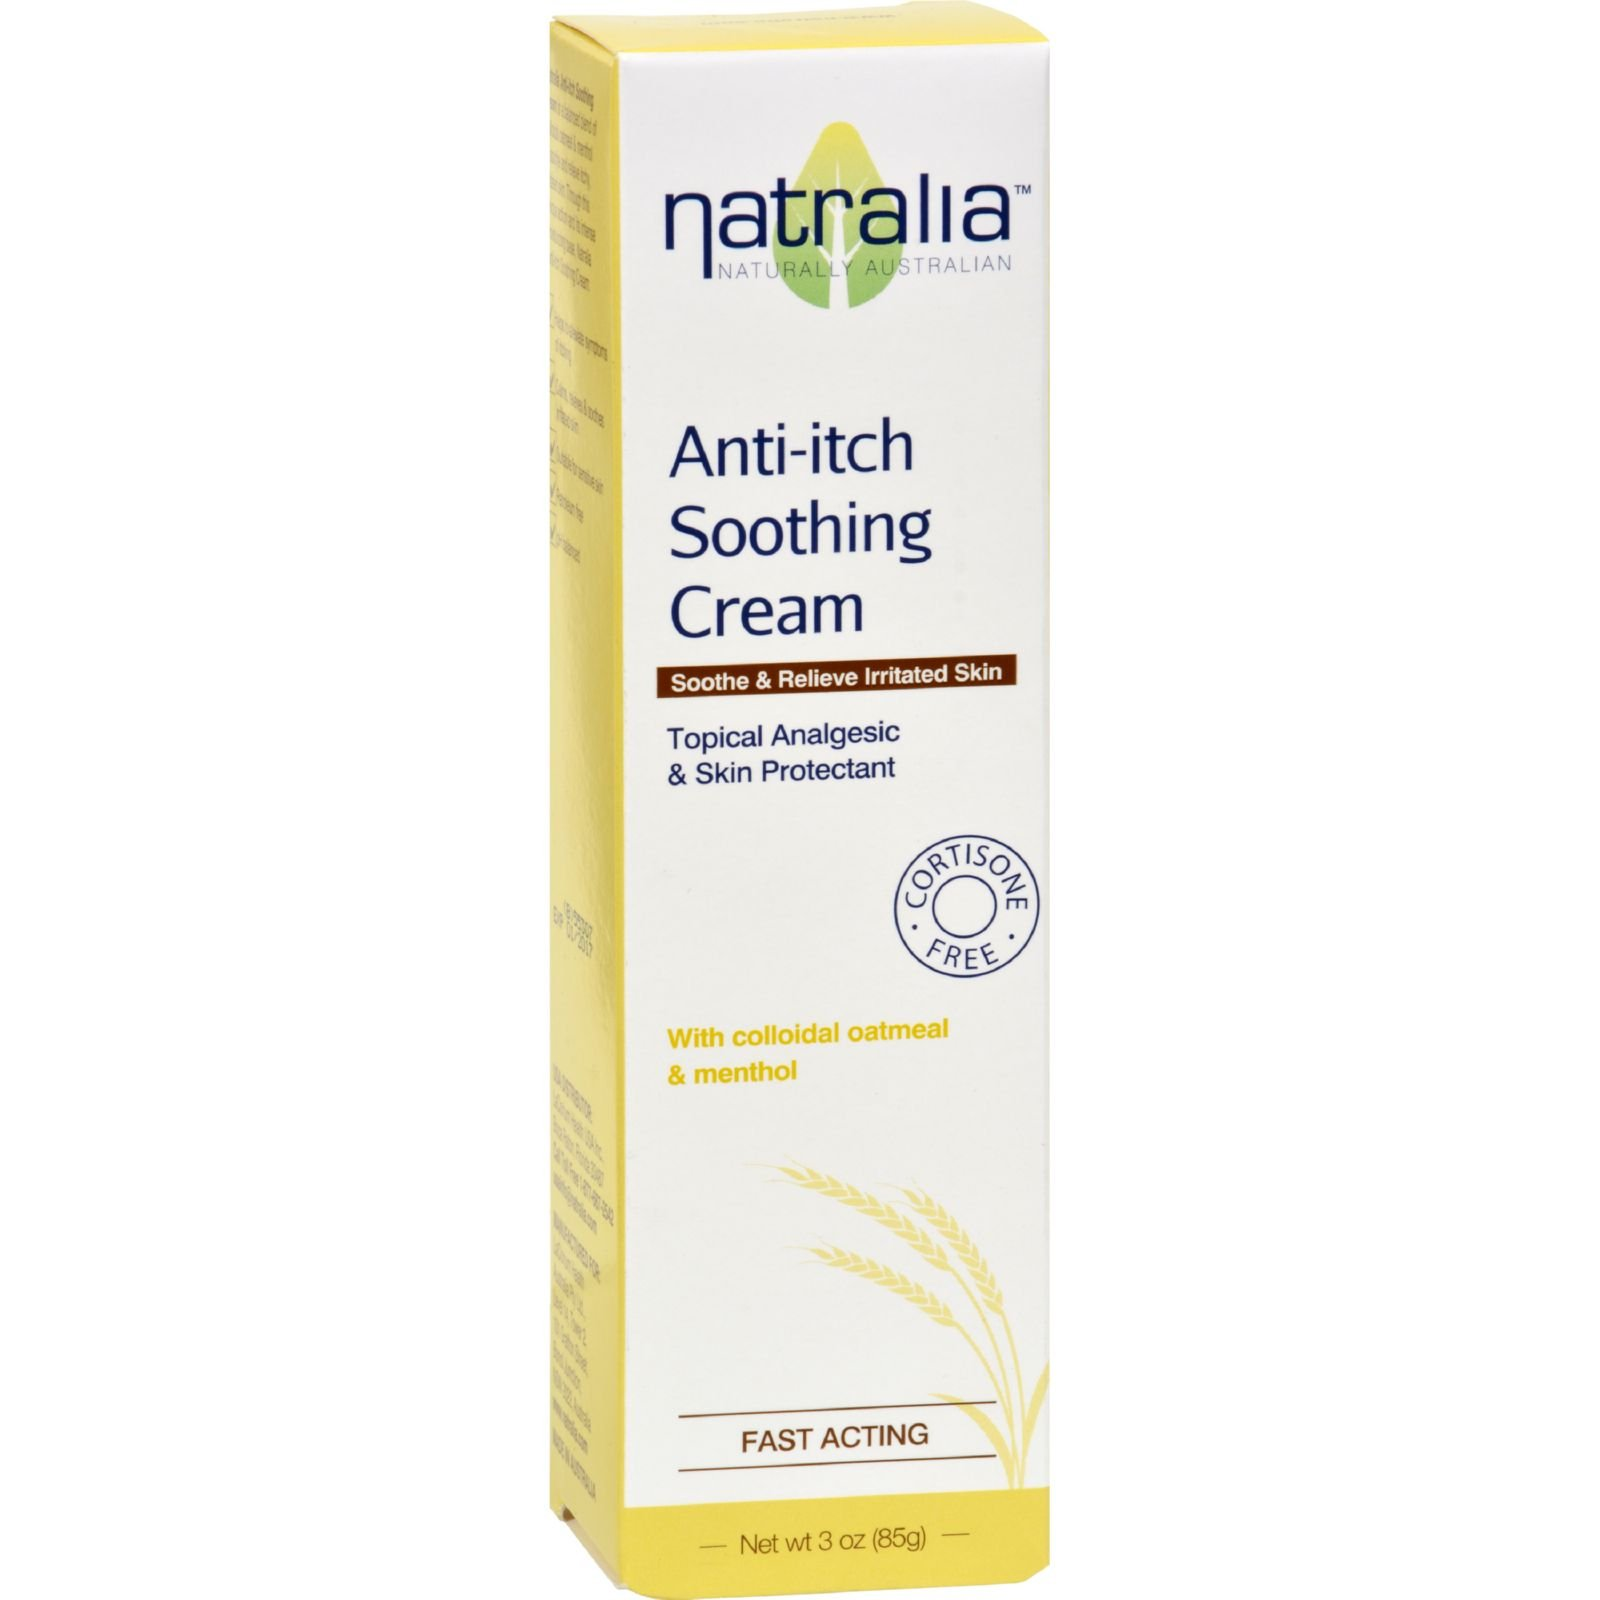 Natralia Anti Itch Soothing Cream - Oatmeal and Menthol - Soothe and Relieve Irritated Skin - 3 oz (Pack of 2)